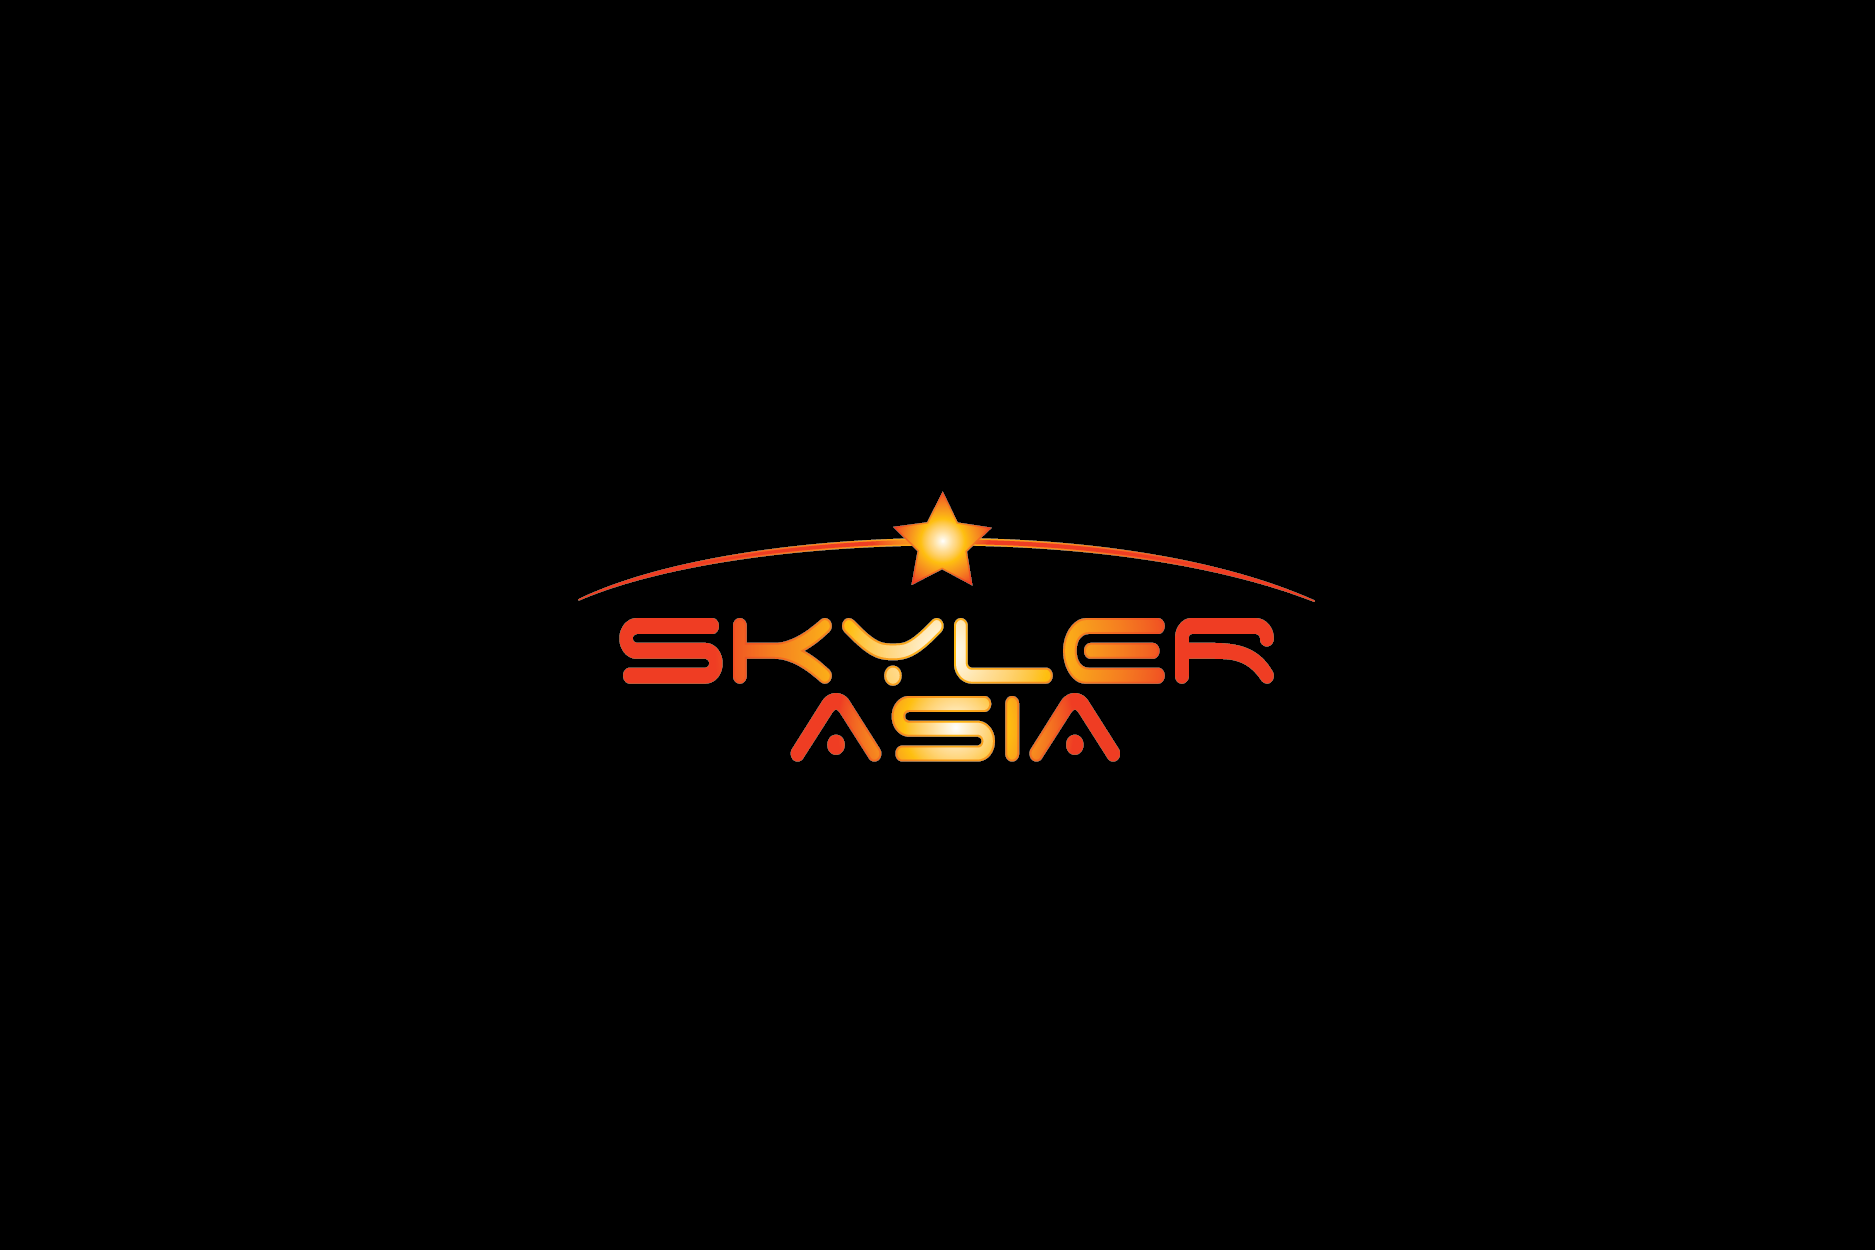 Logo Design by Private User - Entry No. 225 in the Logo Design Contest Artistic Logo Design for Skyler.Asia.